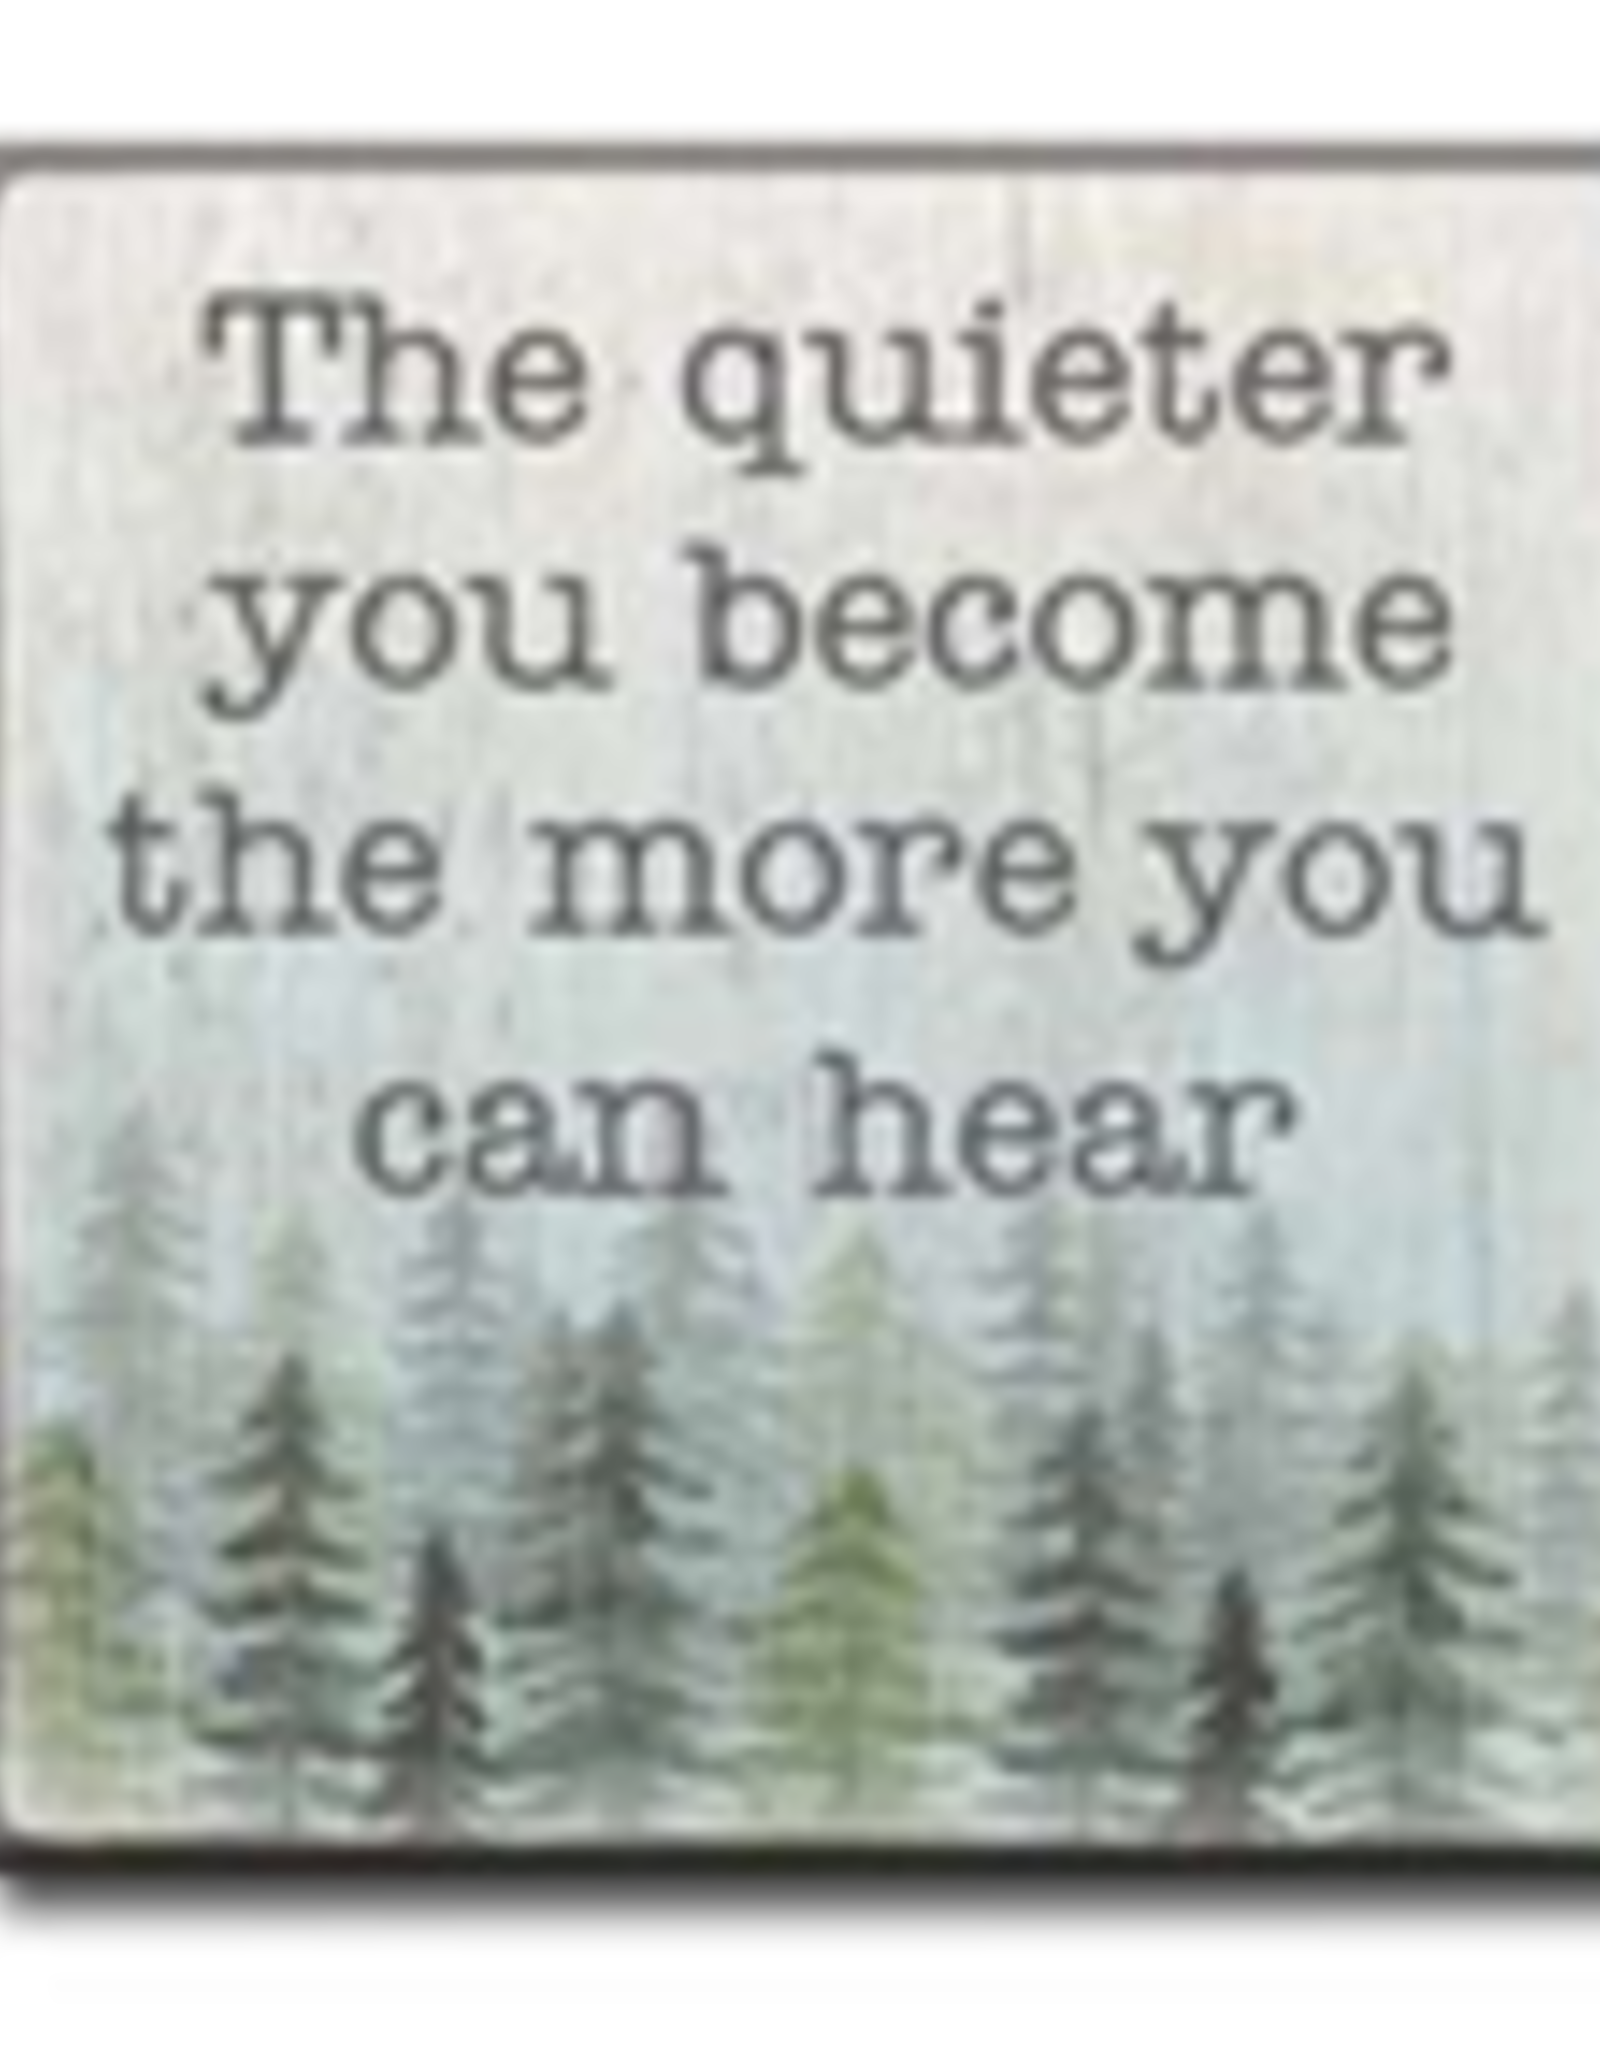 The Quieter You Become The More You Can Hear 4x4